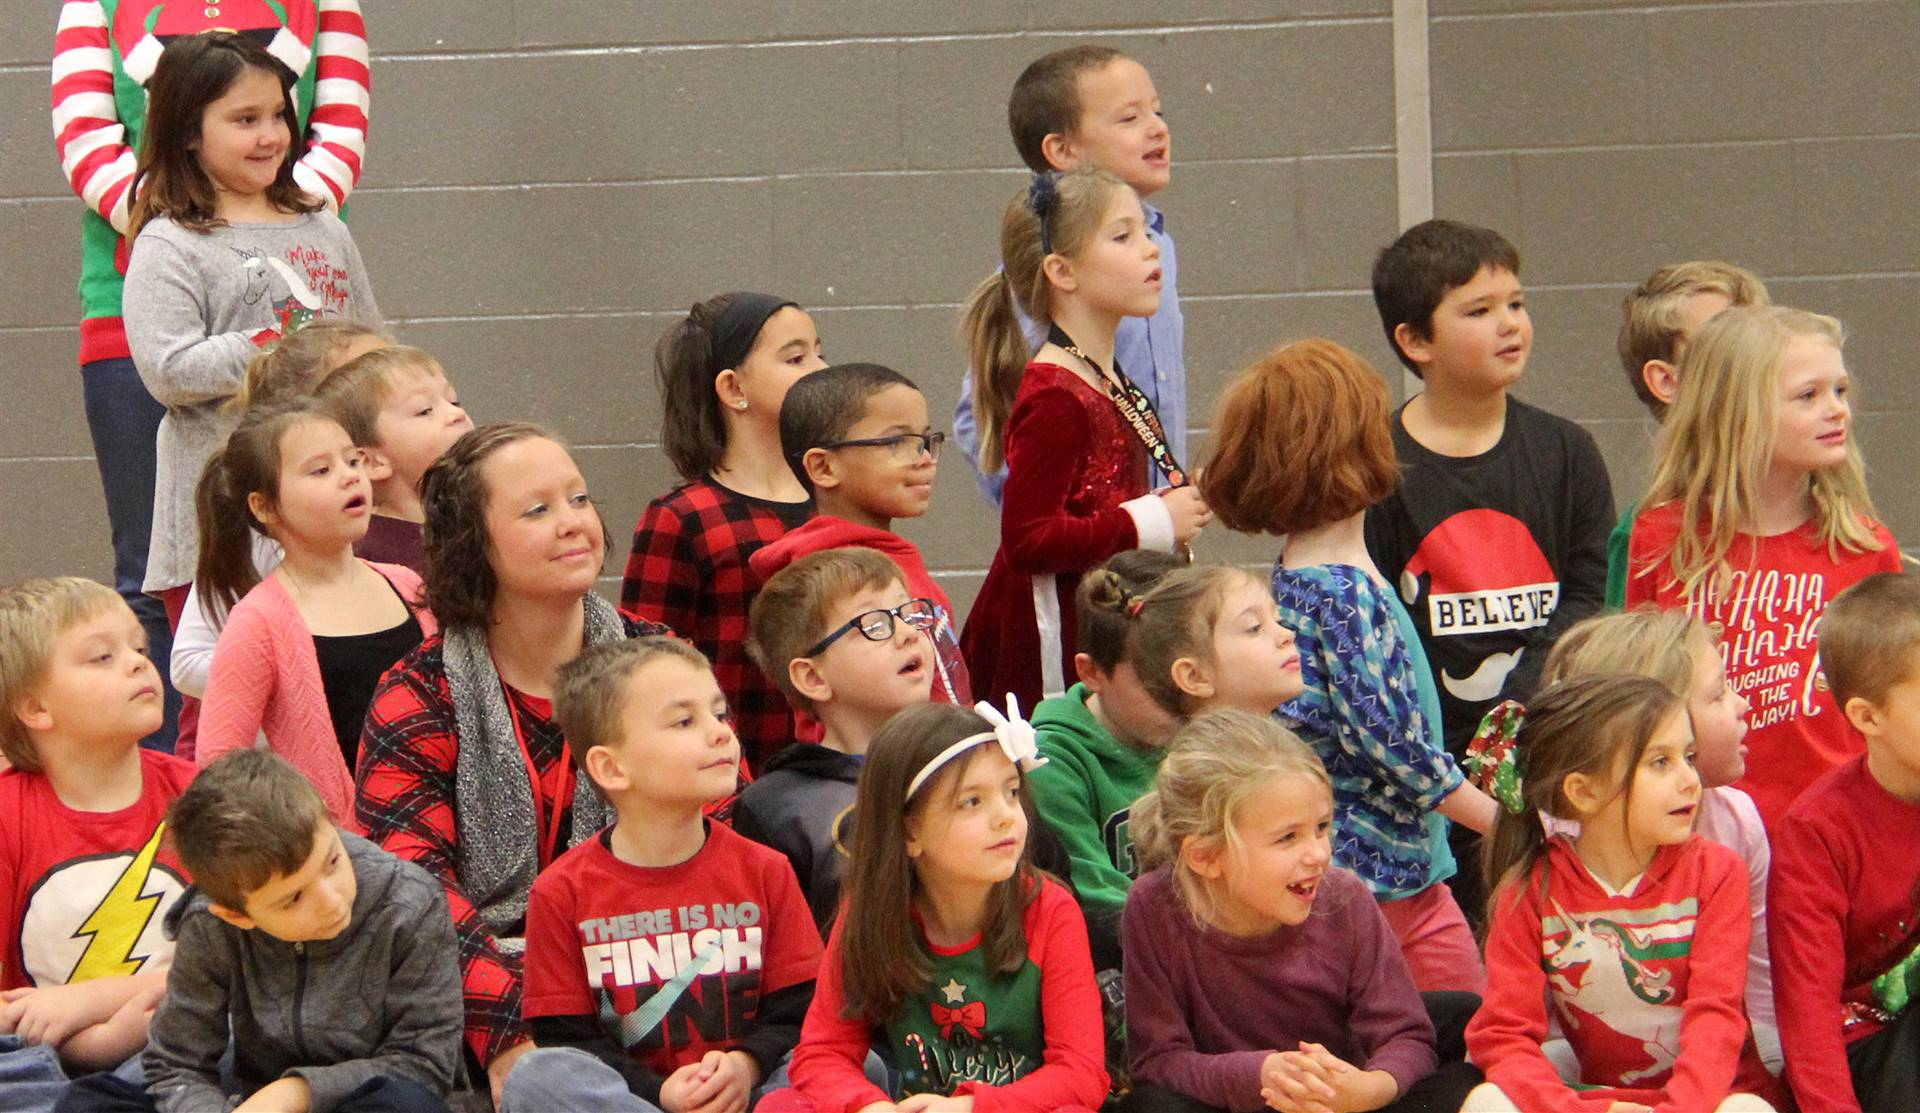 additional students watching activity